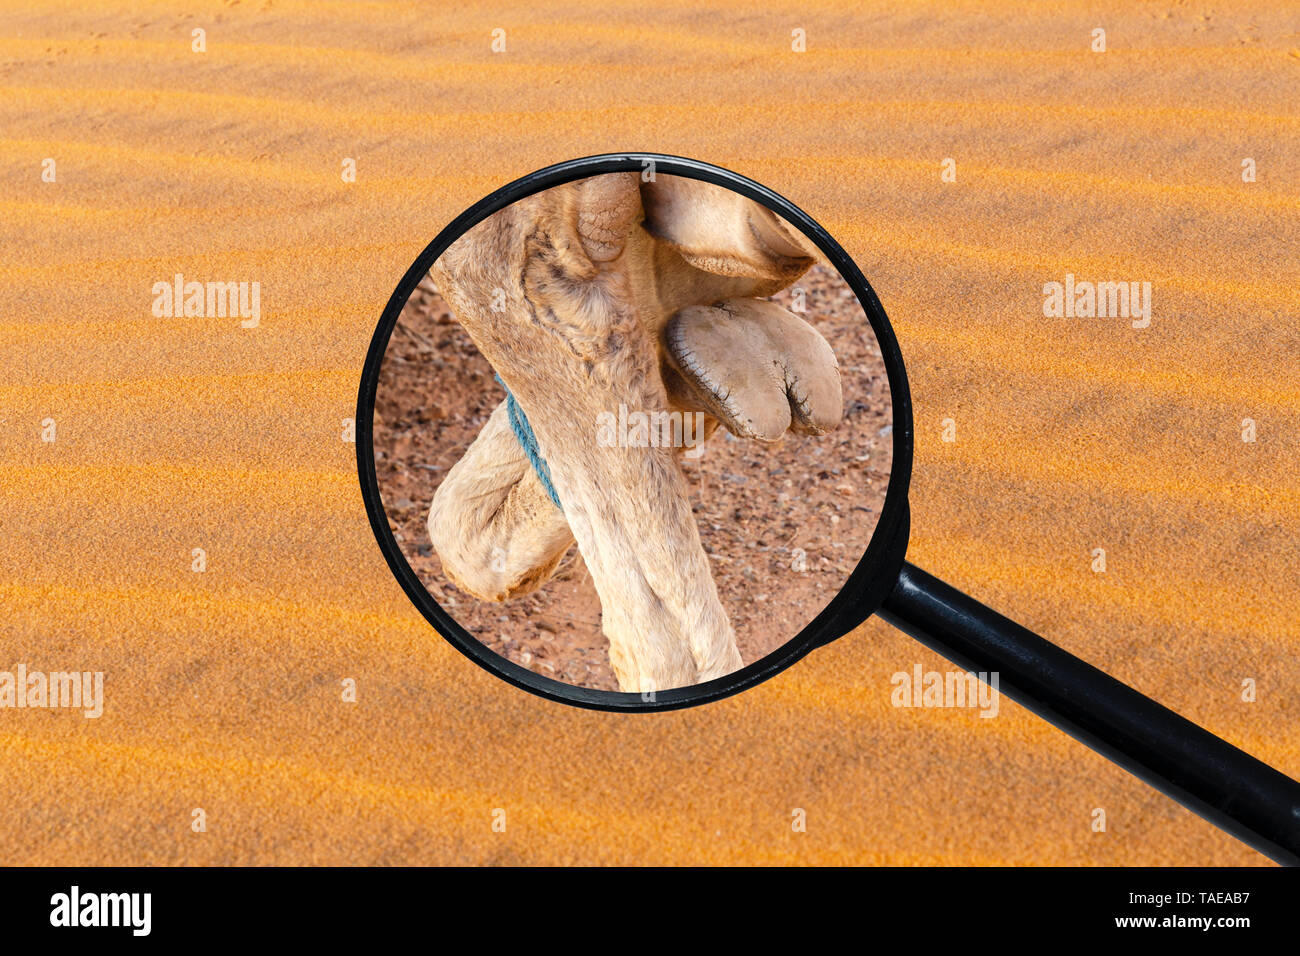 foot of a camel, view through a magnifying glass against the background of sand - Stock Image